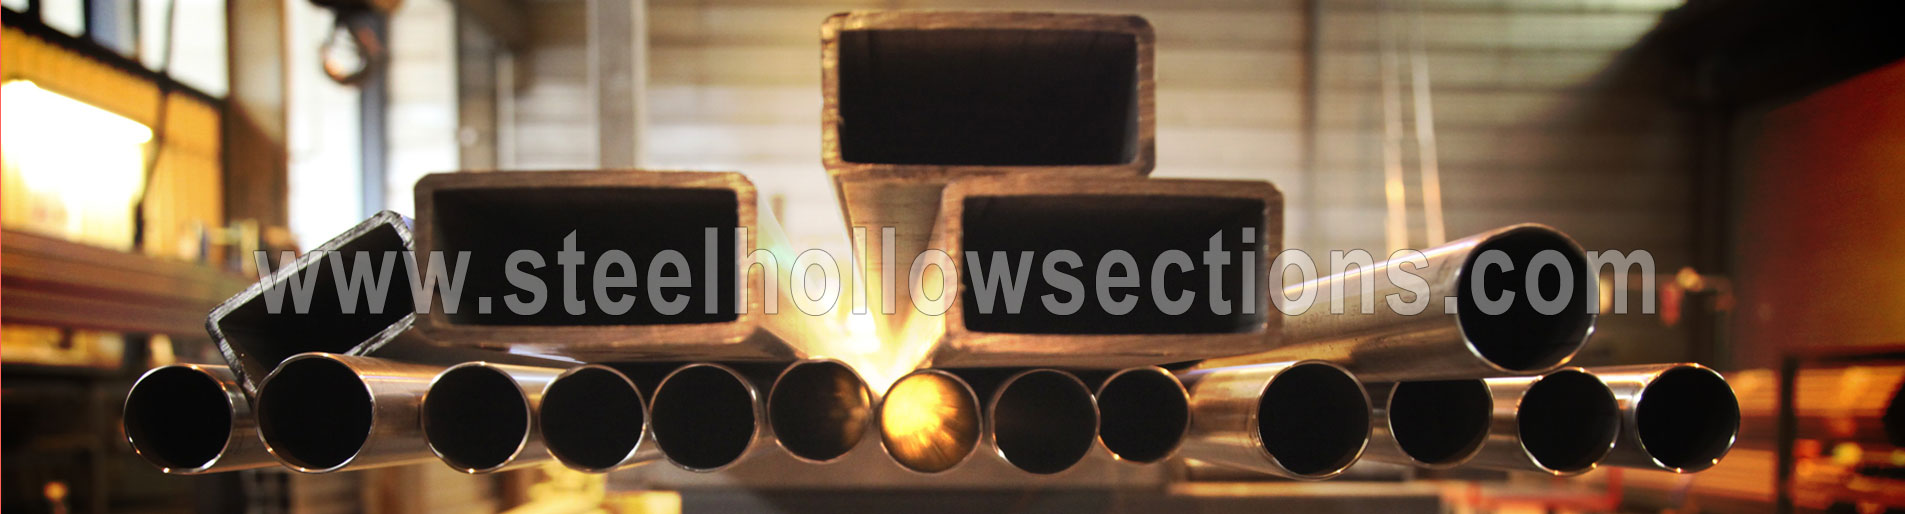 Hollow Section Square Pipe Suppliers Dealers Distributors